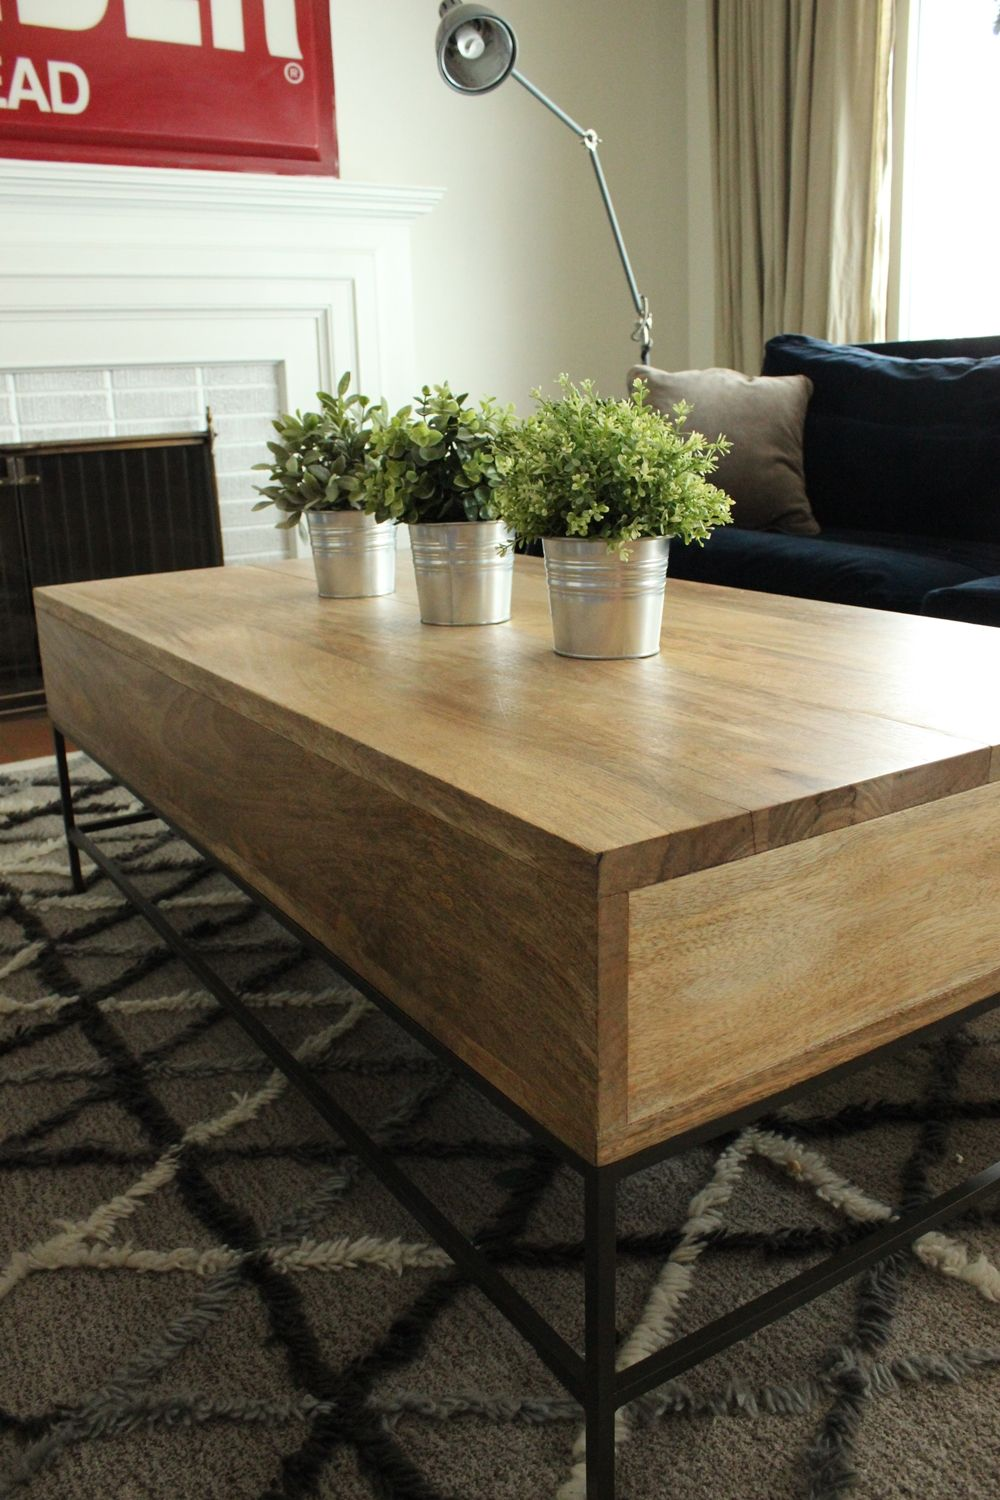 How to style a family friendly coffee table organi plants to style a coffee table geotapseo Gallery